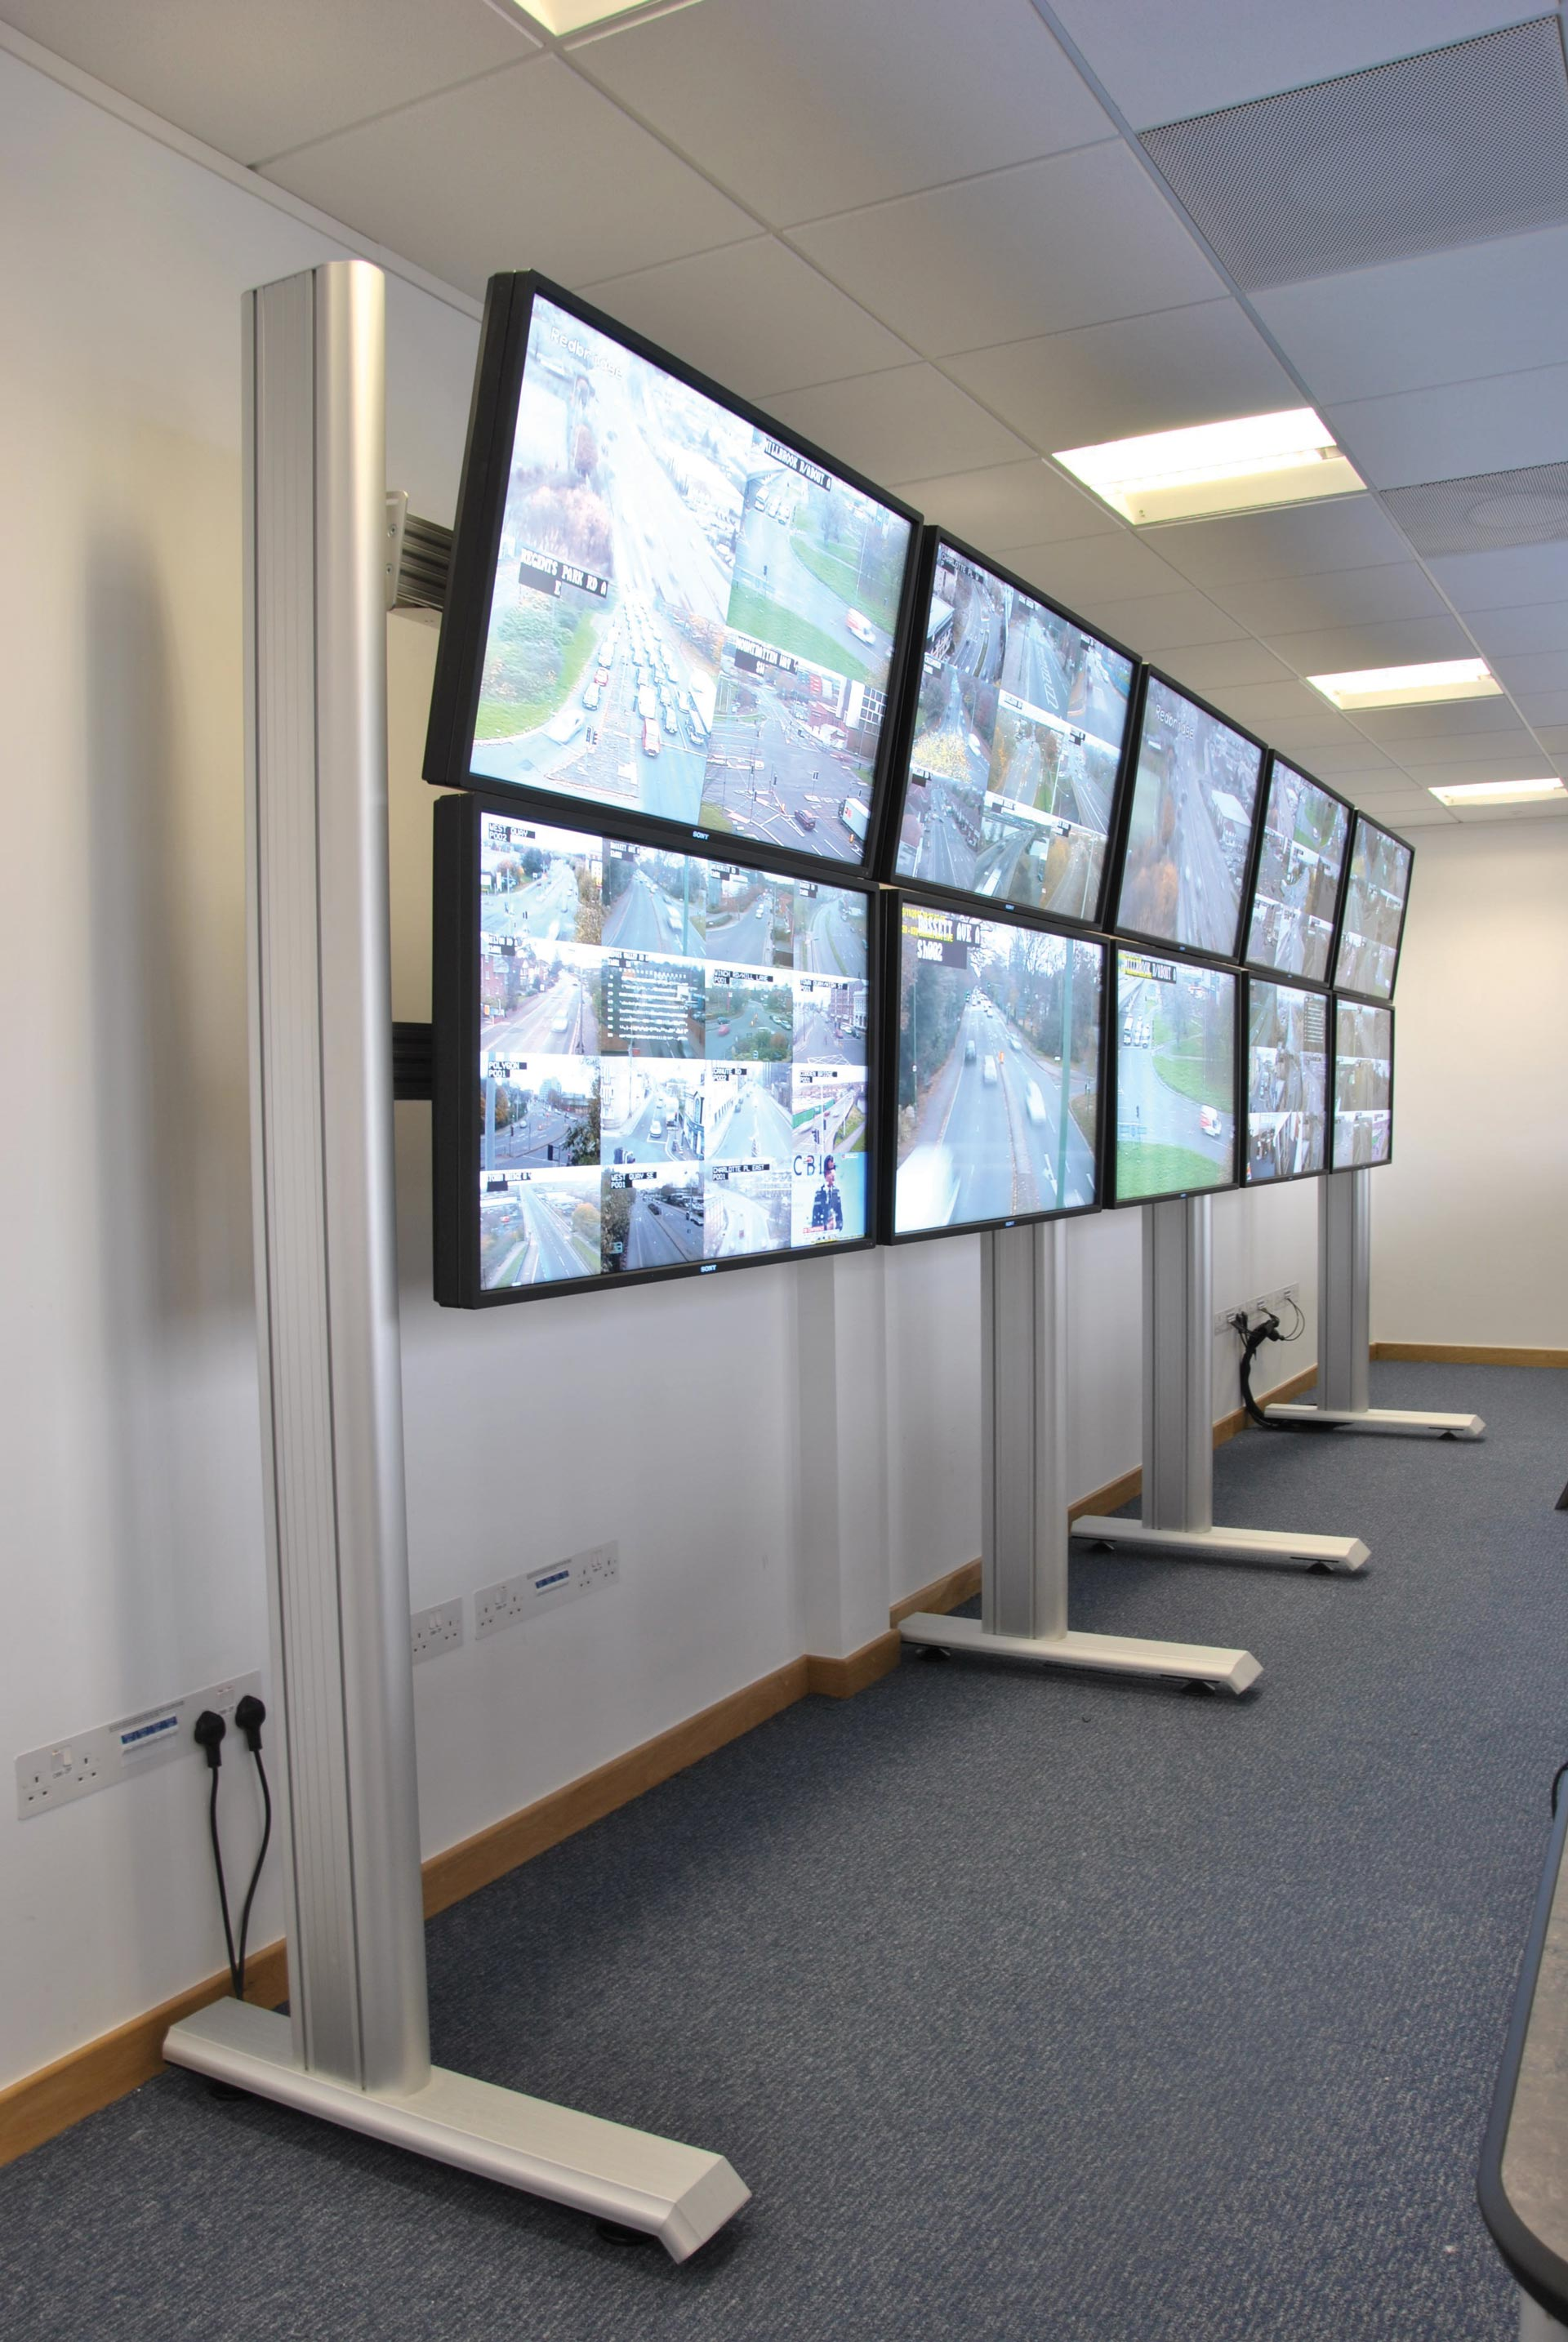 media-wall-example-security-control-room